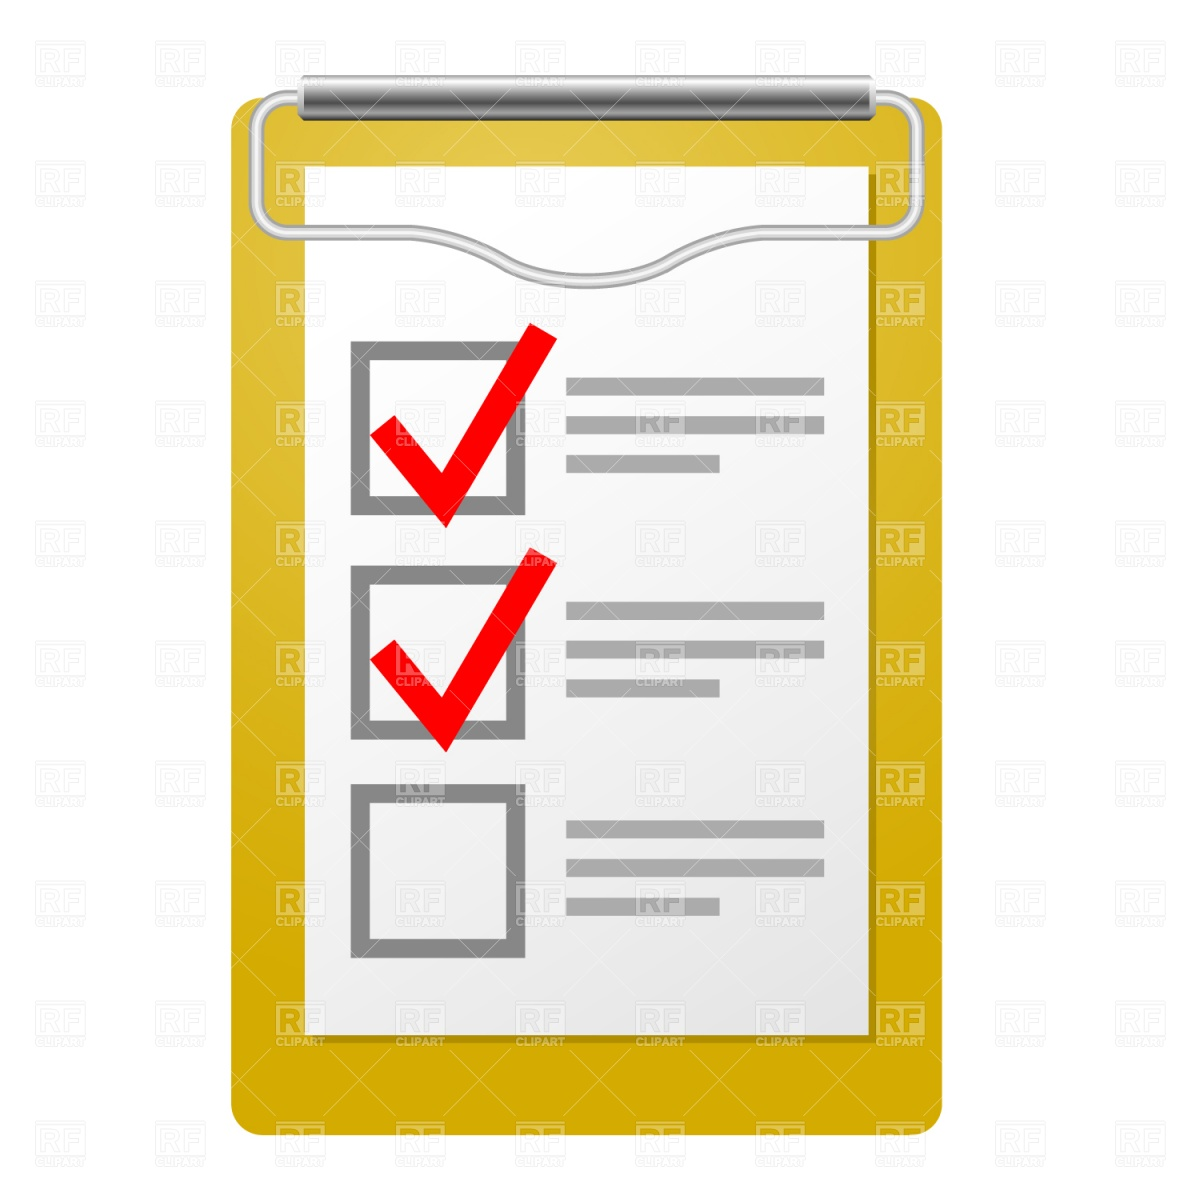 1200x1200 Clipboard With Checklist Vector Image Vector Artwork Of Objects